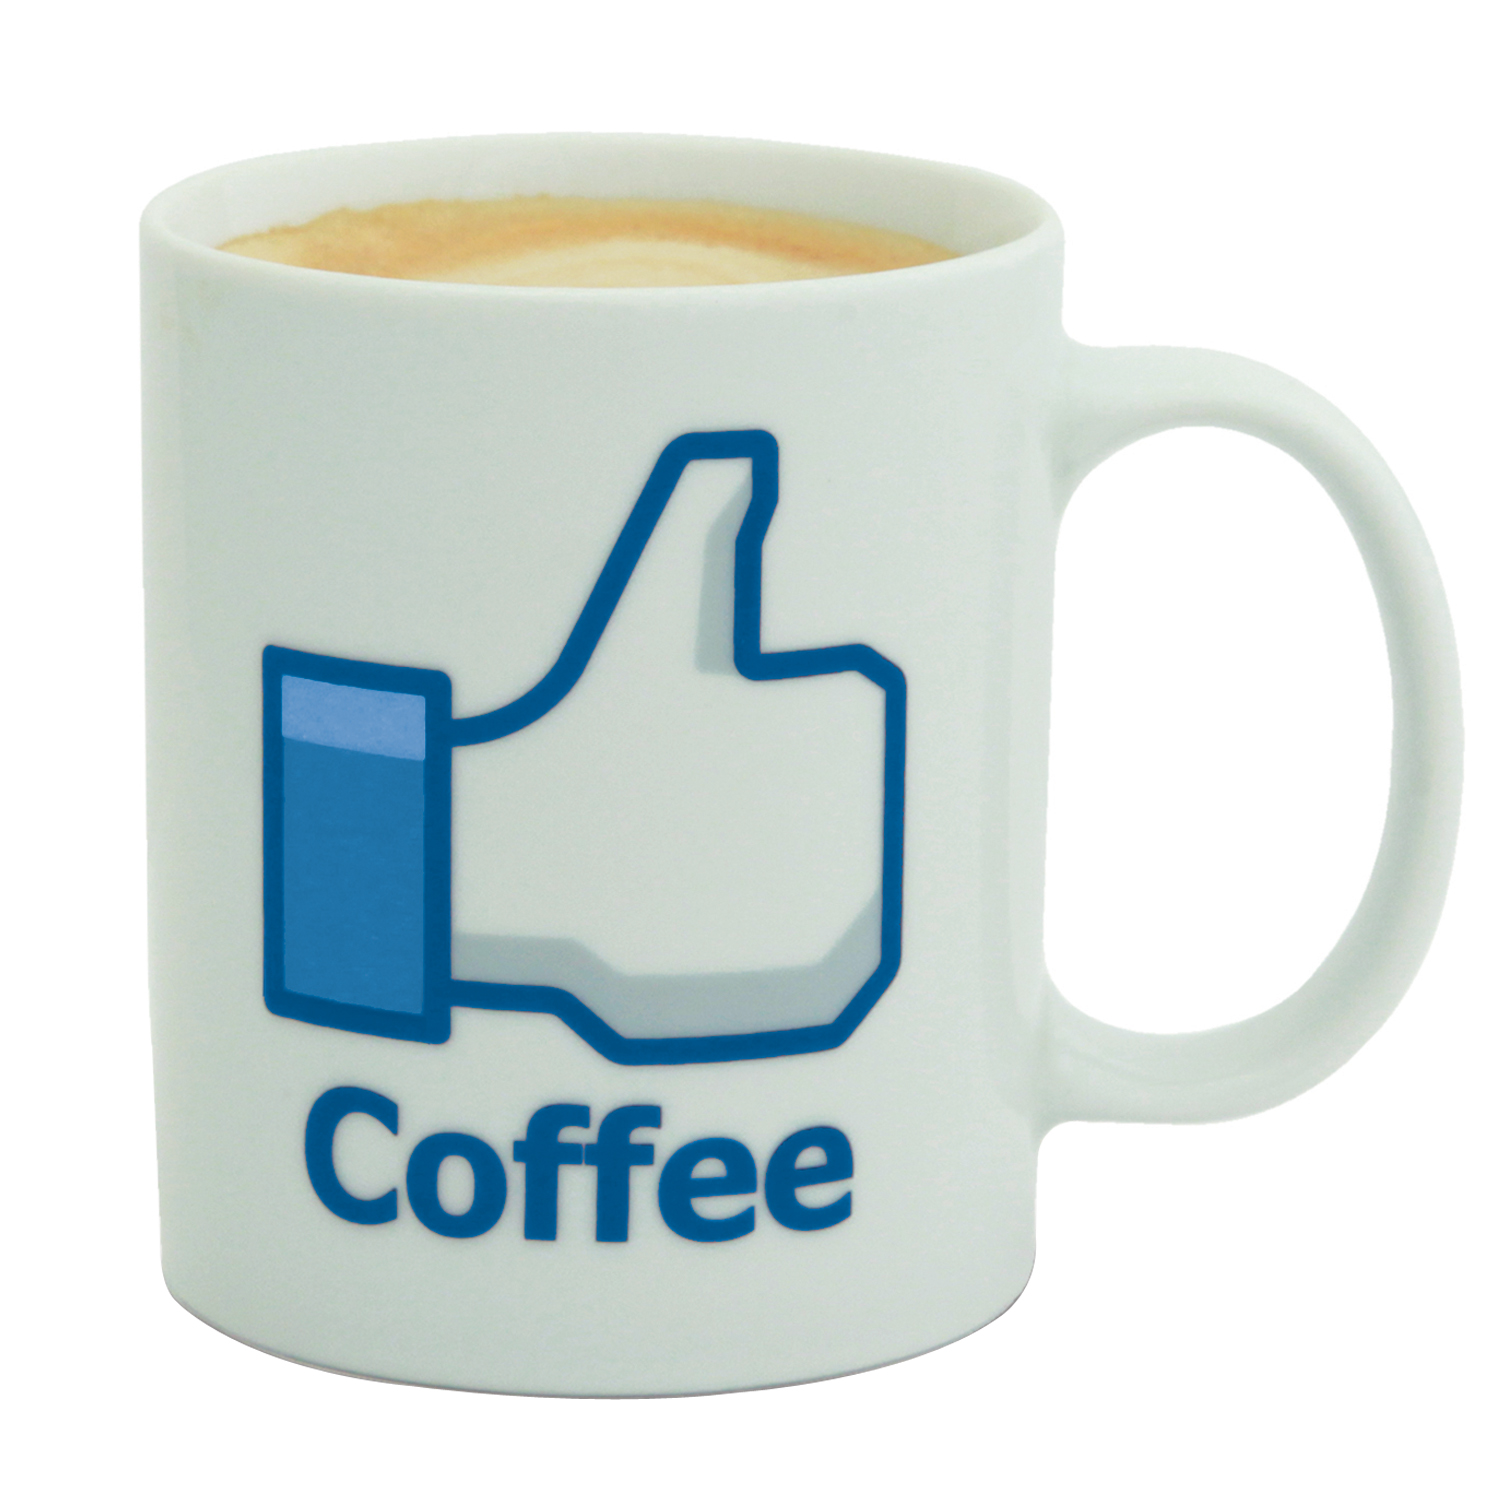 mug like facebook caf le mug facebook coffe pour les fans de facebook super insolite. Black Bedroom Furniture Sets. Home Design Ideas